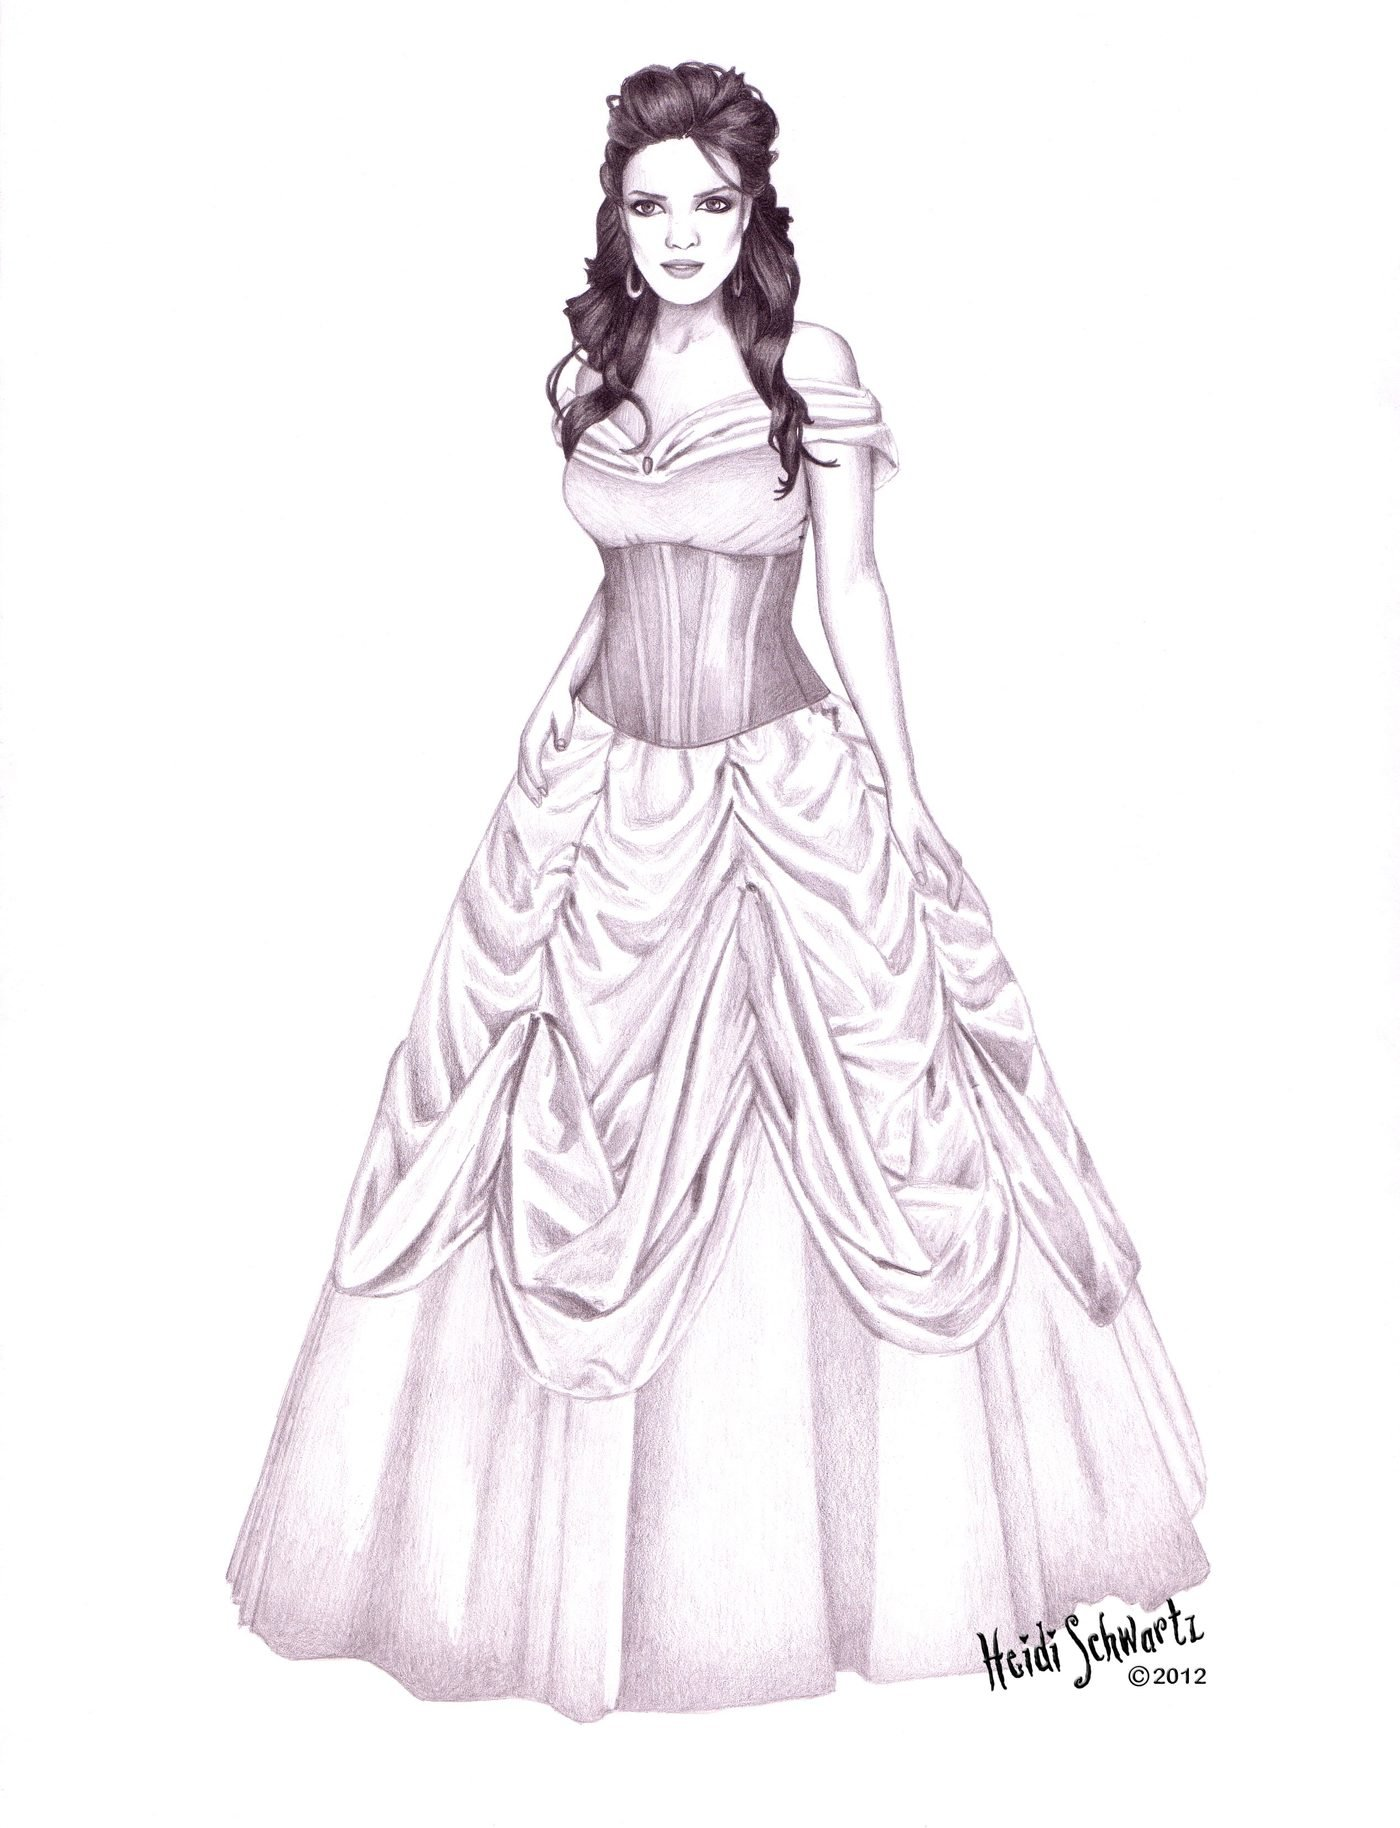 Belle Beauty And The Beast Character Development Drawings By Heidi Schwartz At Coroflot